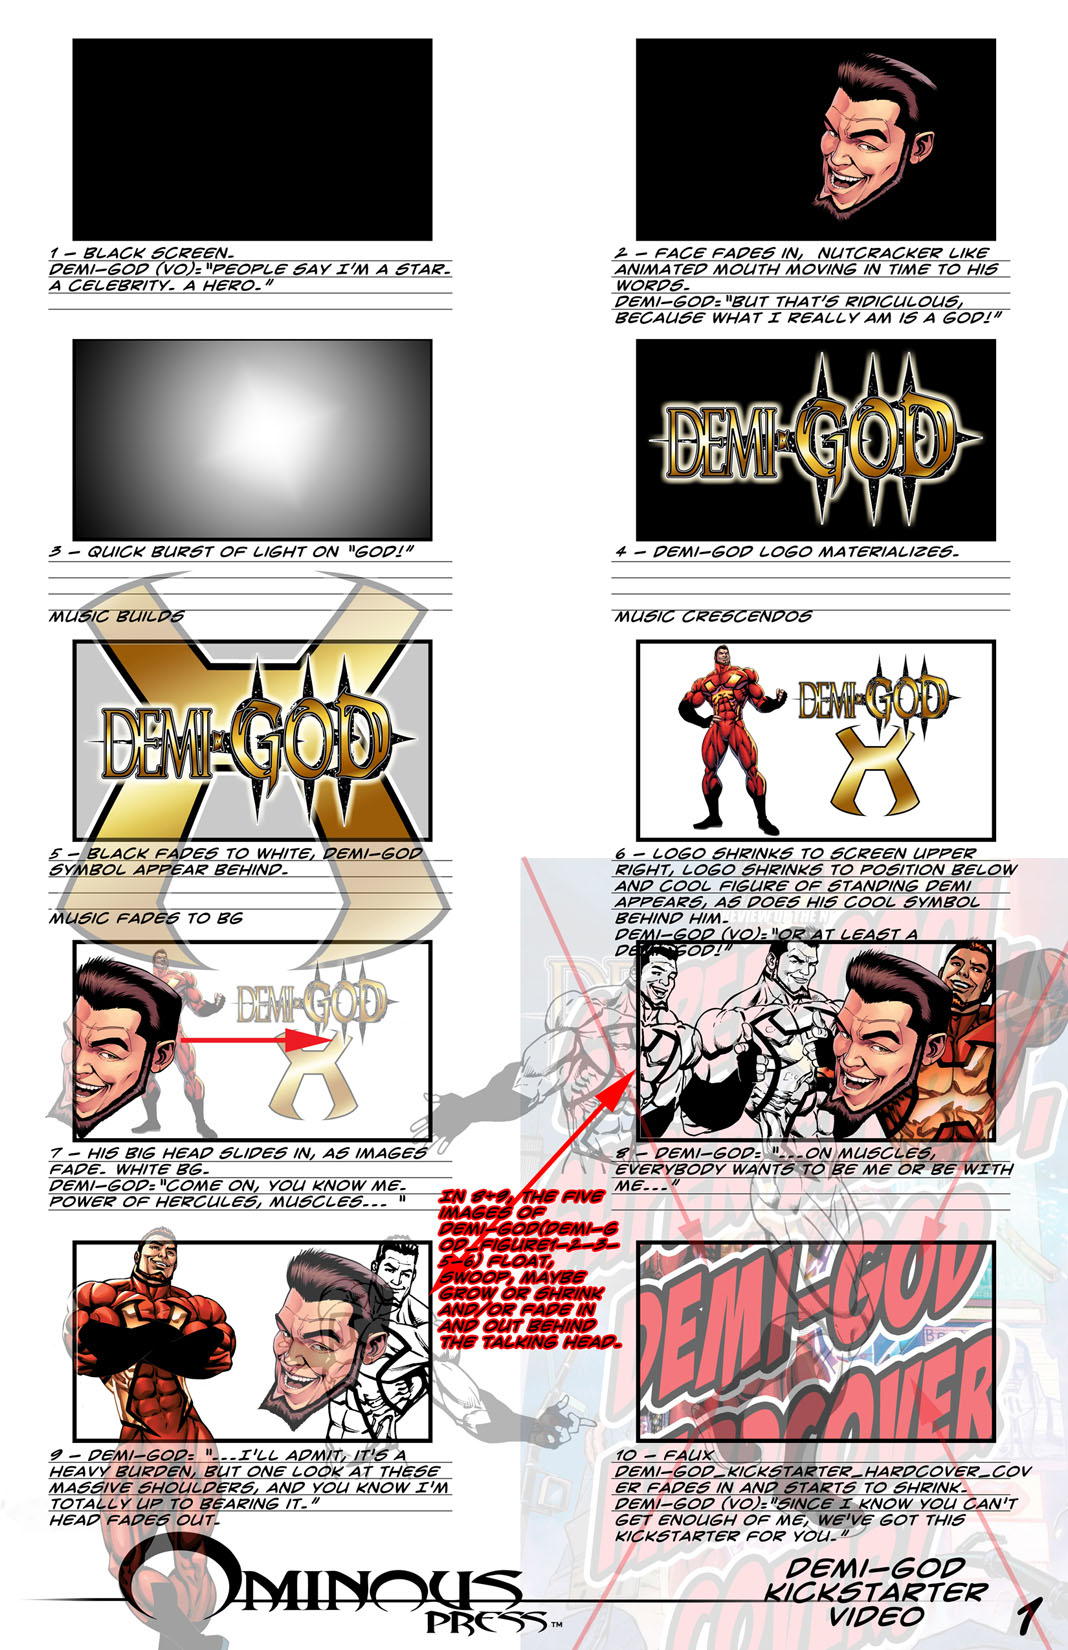 Demi-God_KickstarterVideo_Storyboard_Pag